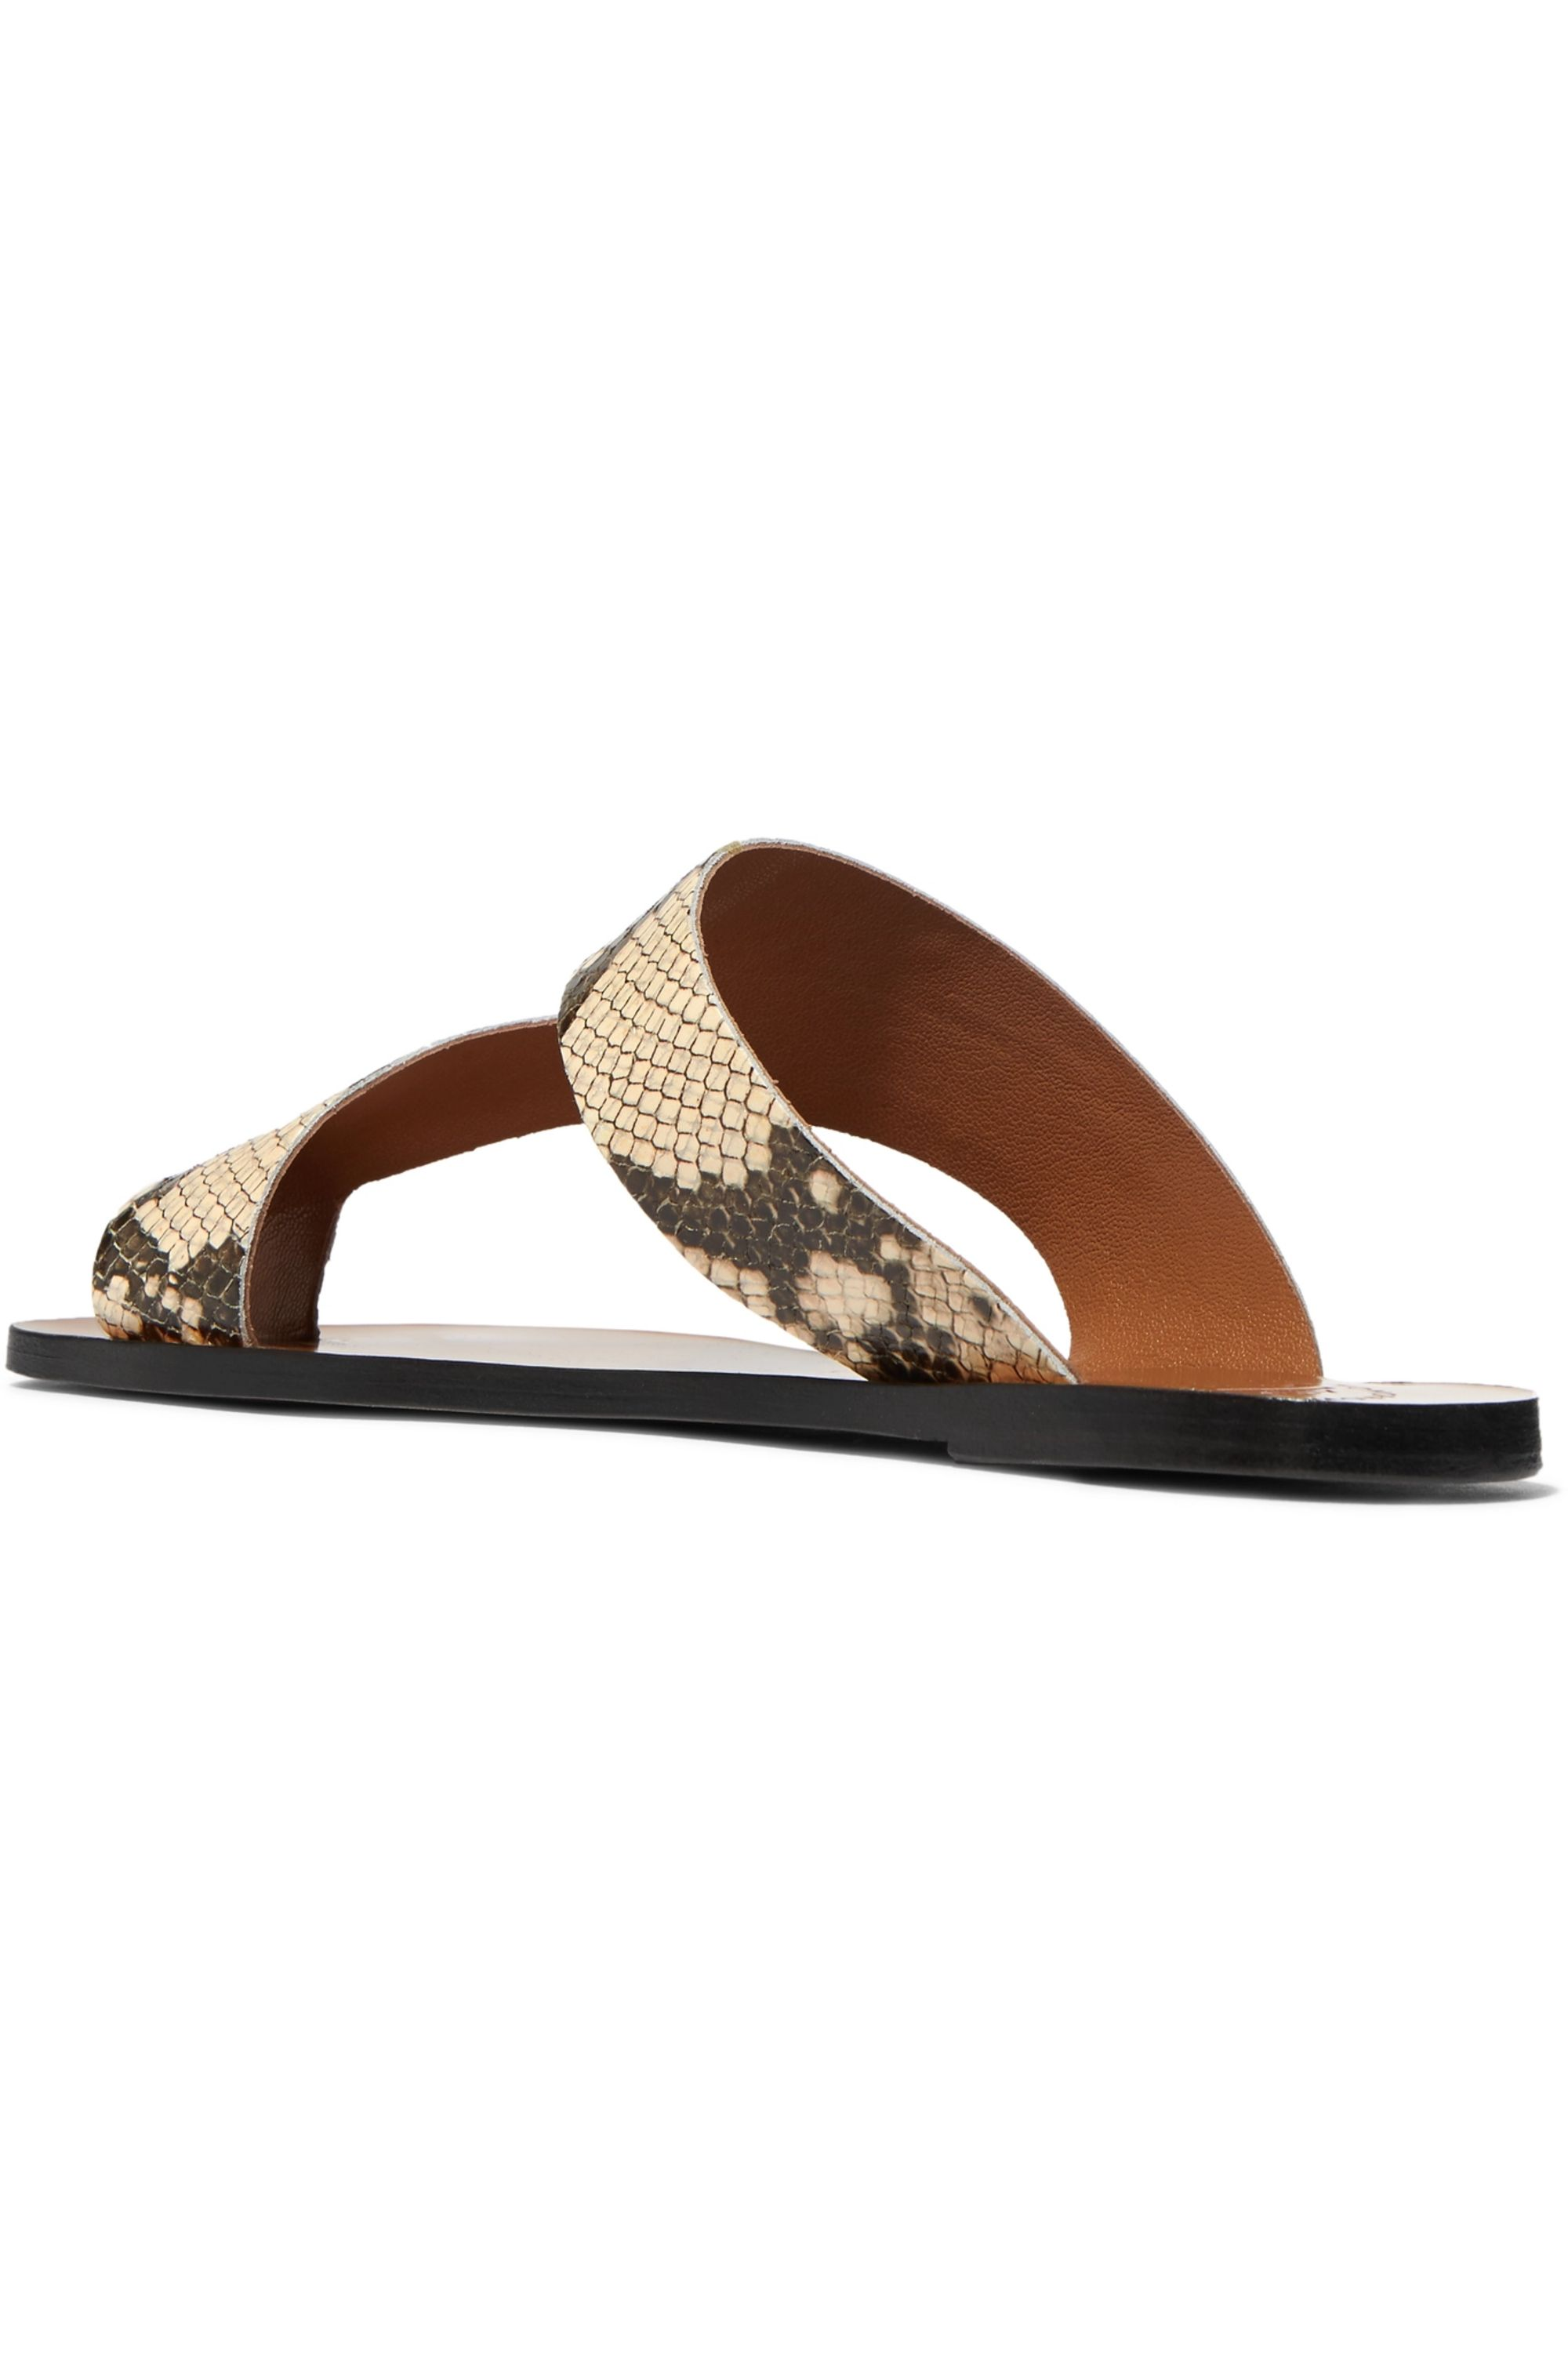 ATP Atelier Roma snake-effect leather sandals